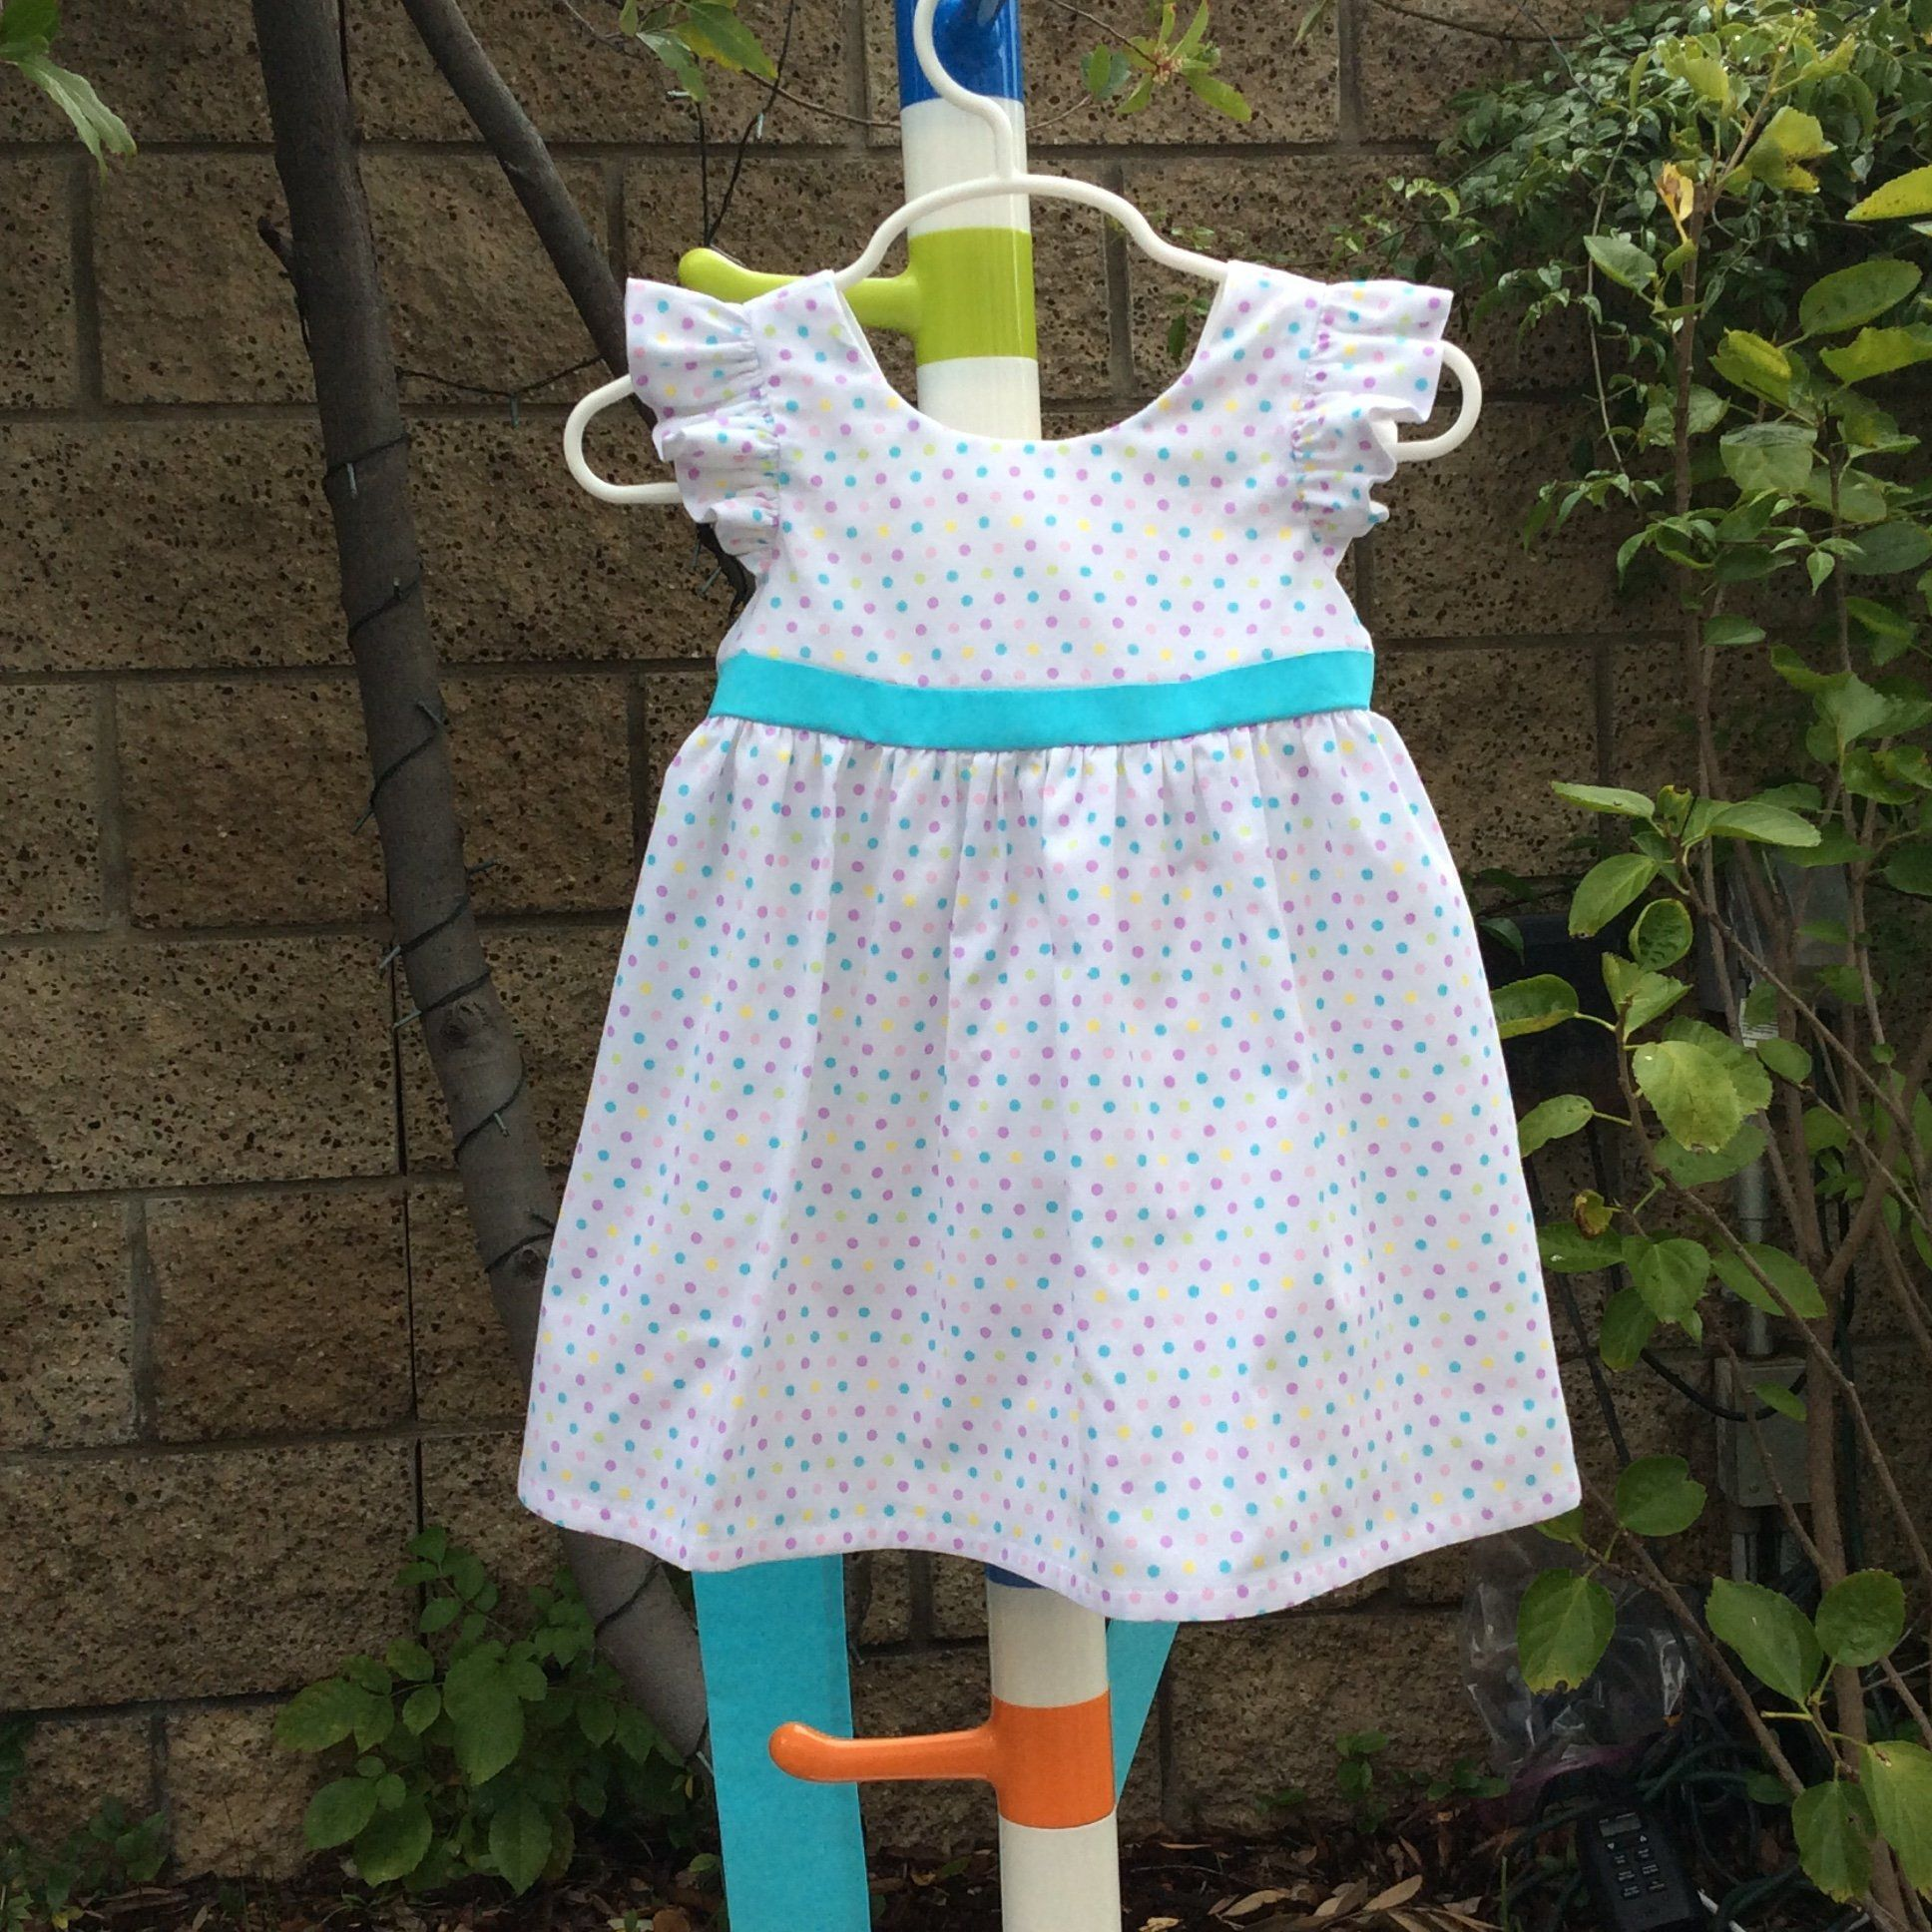 Girls Polka Dots Easter Spring Summer Party Cotton Dress Or Dress Bloomer Set Ruffle Sleeves White Aqua Purp Dress Bloomers Girls Party Dress Girl Outfits [ 1936 x 1936 Pixel ]